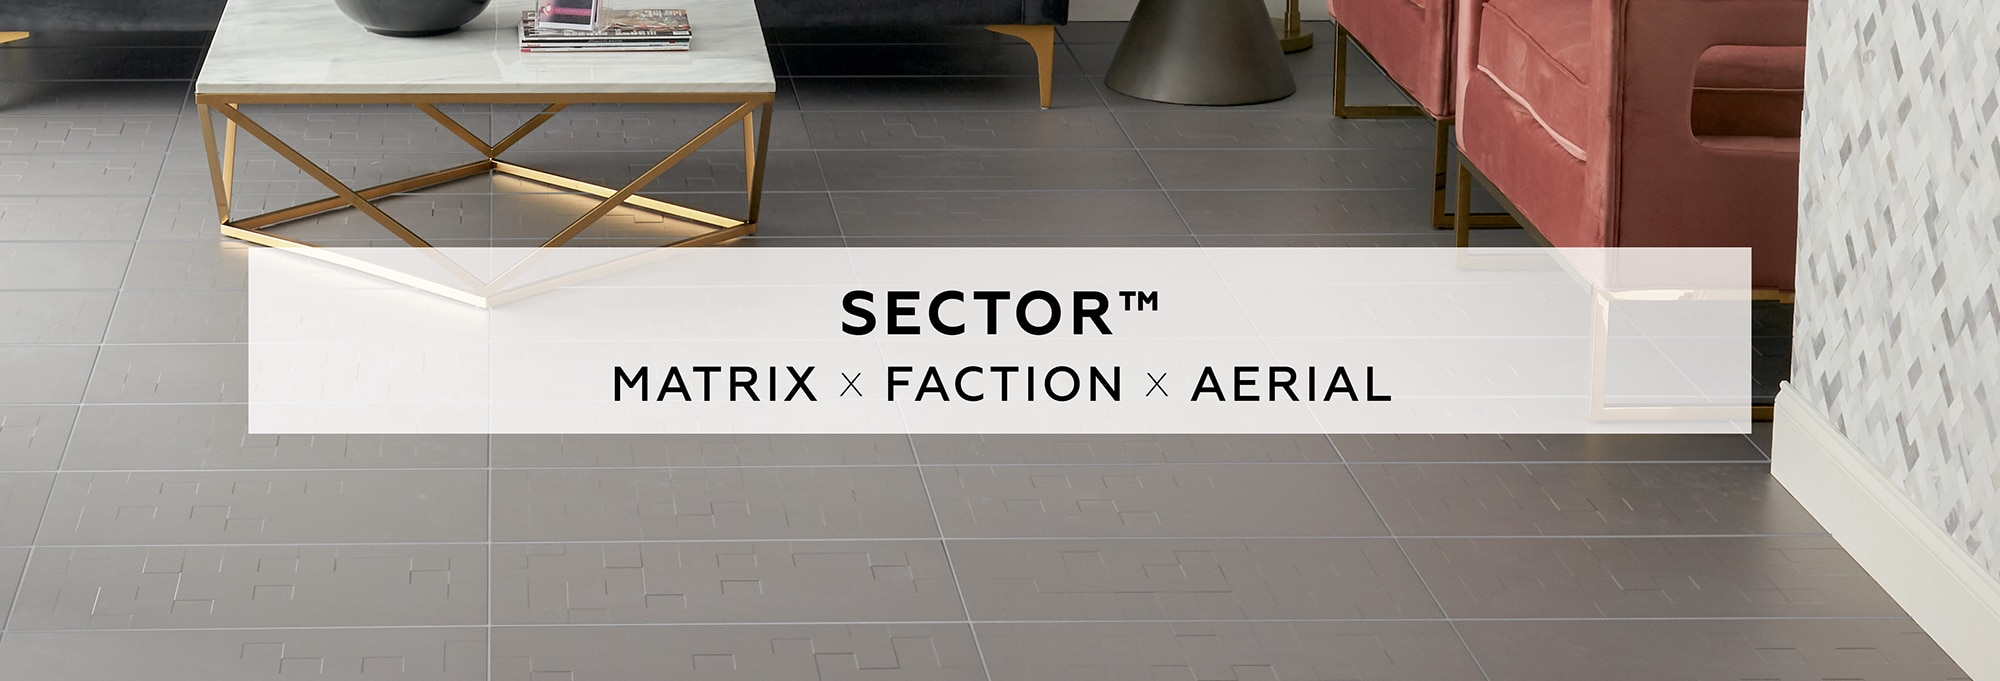 Sector Matrix. Sector Faction. Section Aerial.